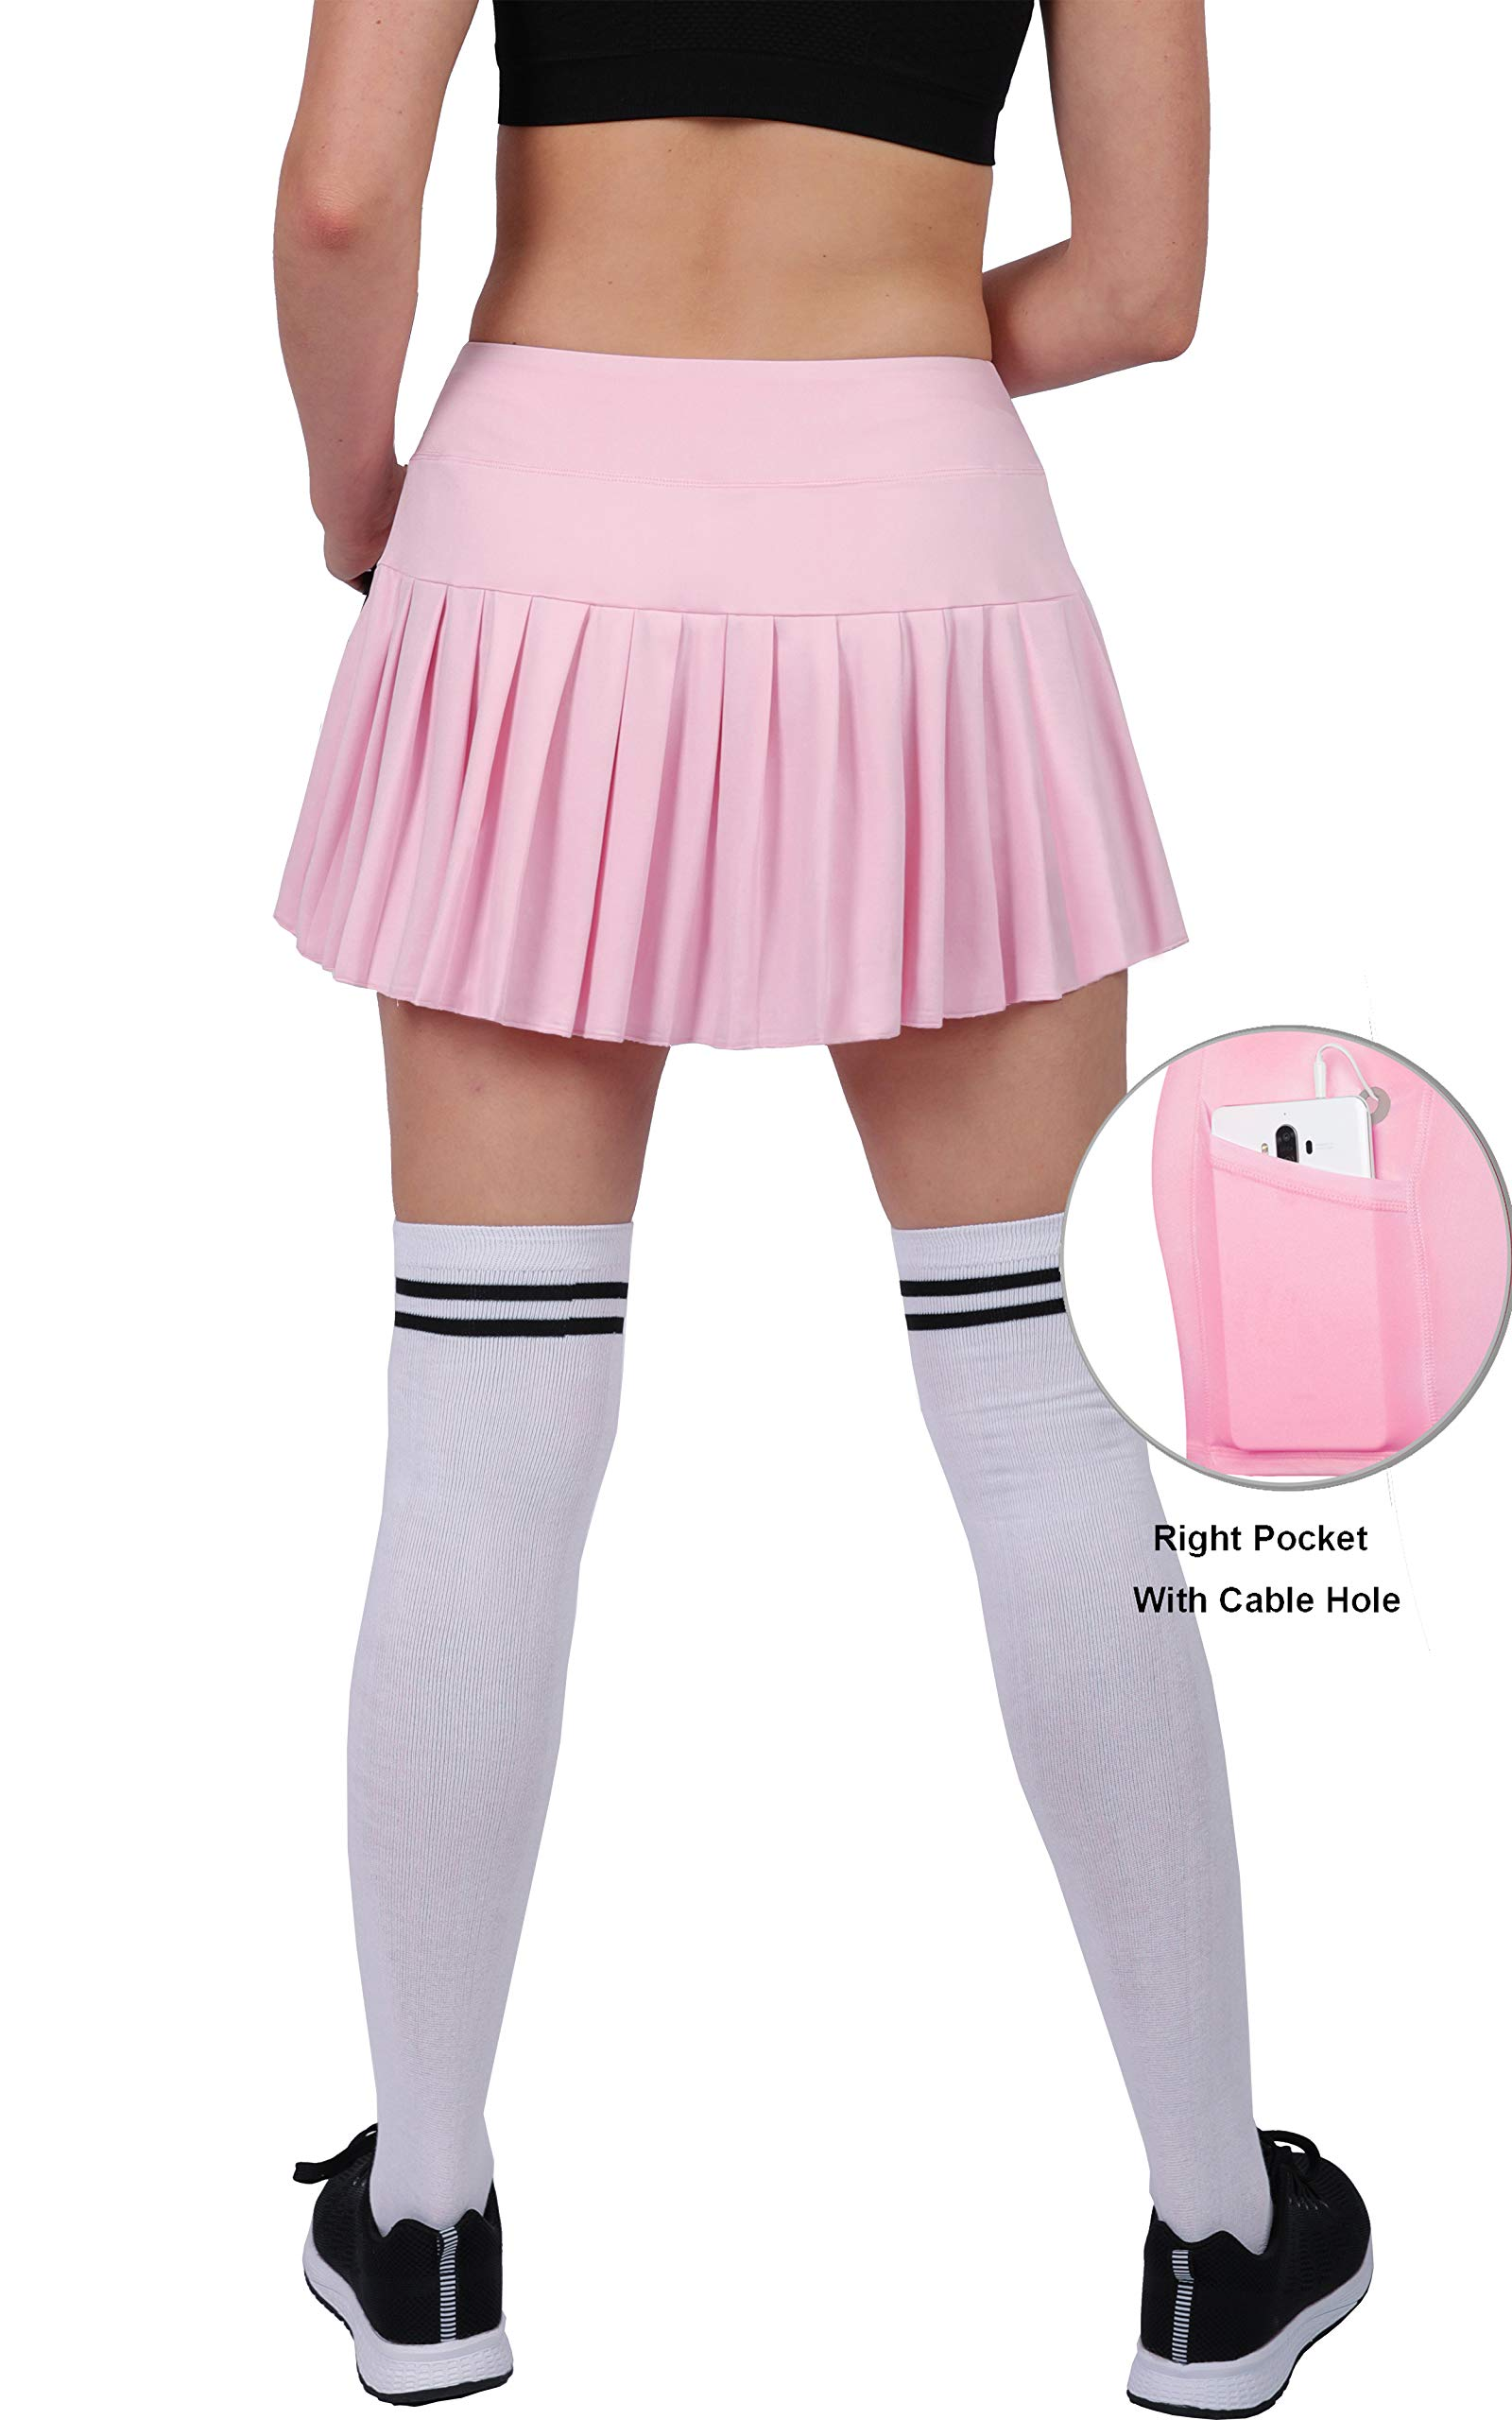 0a11bacfcf626 Womens Built in Tennis Ruffles Skirts Golf Workout Skorts Sports Active  Wear with Pockets Light Pink